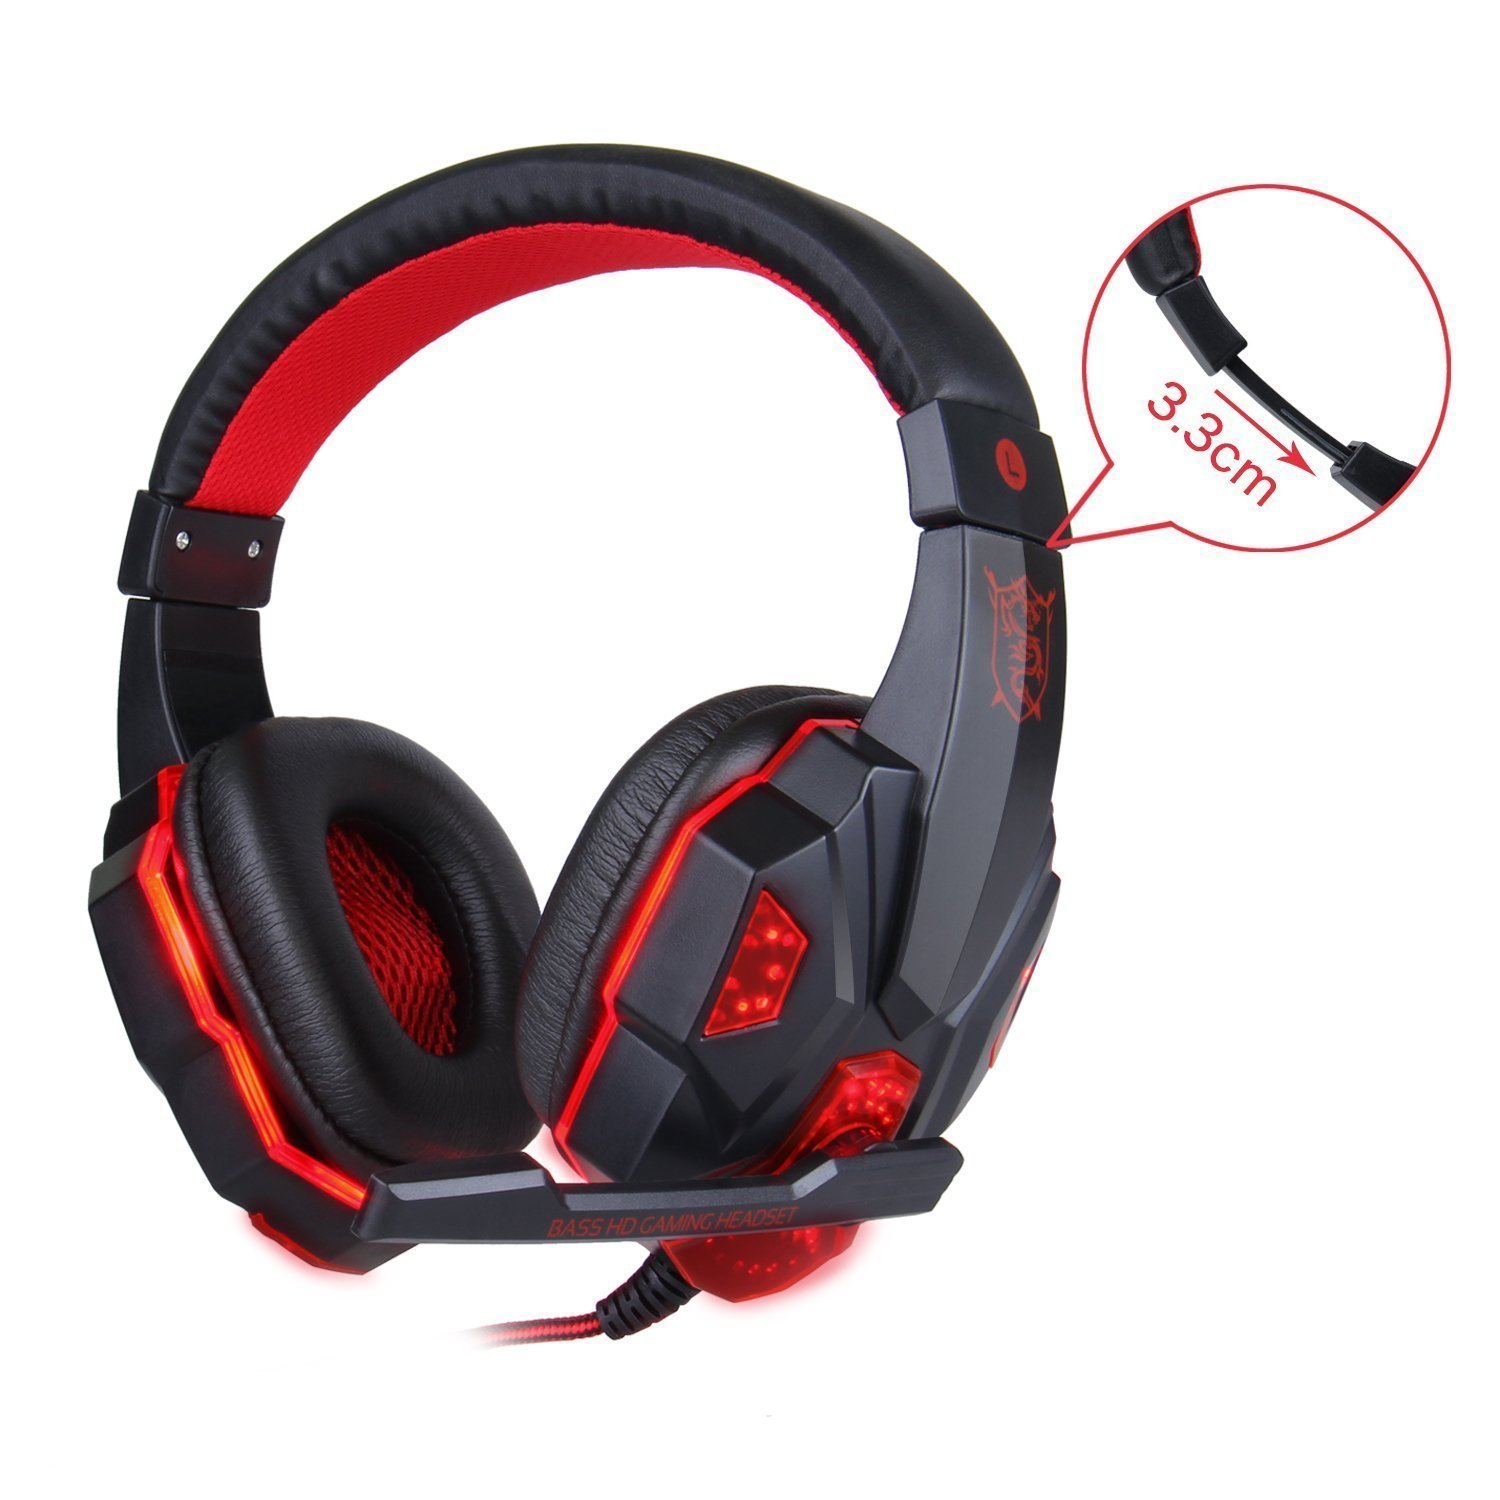 533efb14926 MFTEK Backlit Gaming Keyboard Mouse Combo with LED Gaming Headset Over Ear  Headphone 40mm Speaker Driver + Gaming Mouse Mat-in Keyboard Mouse Combos  from ...